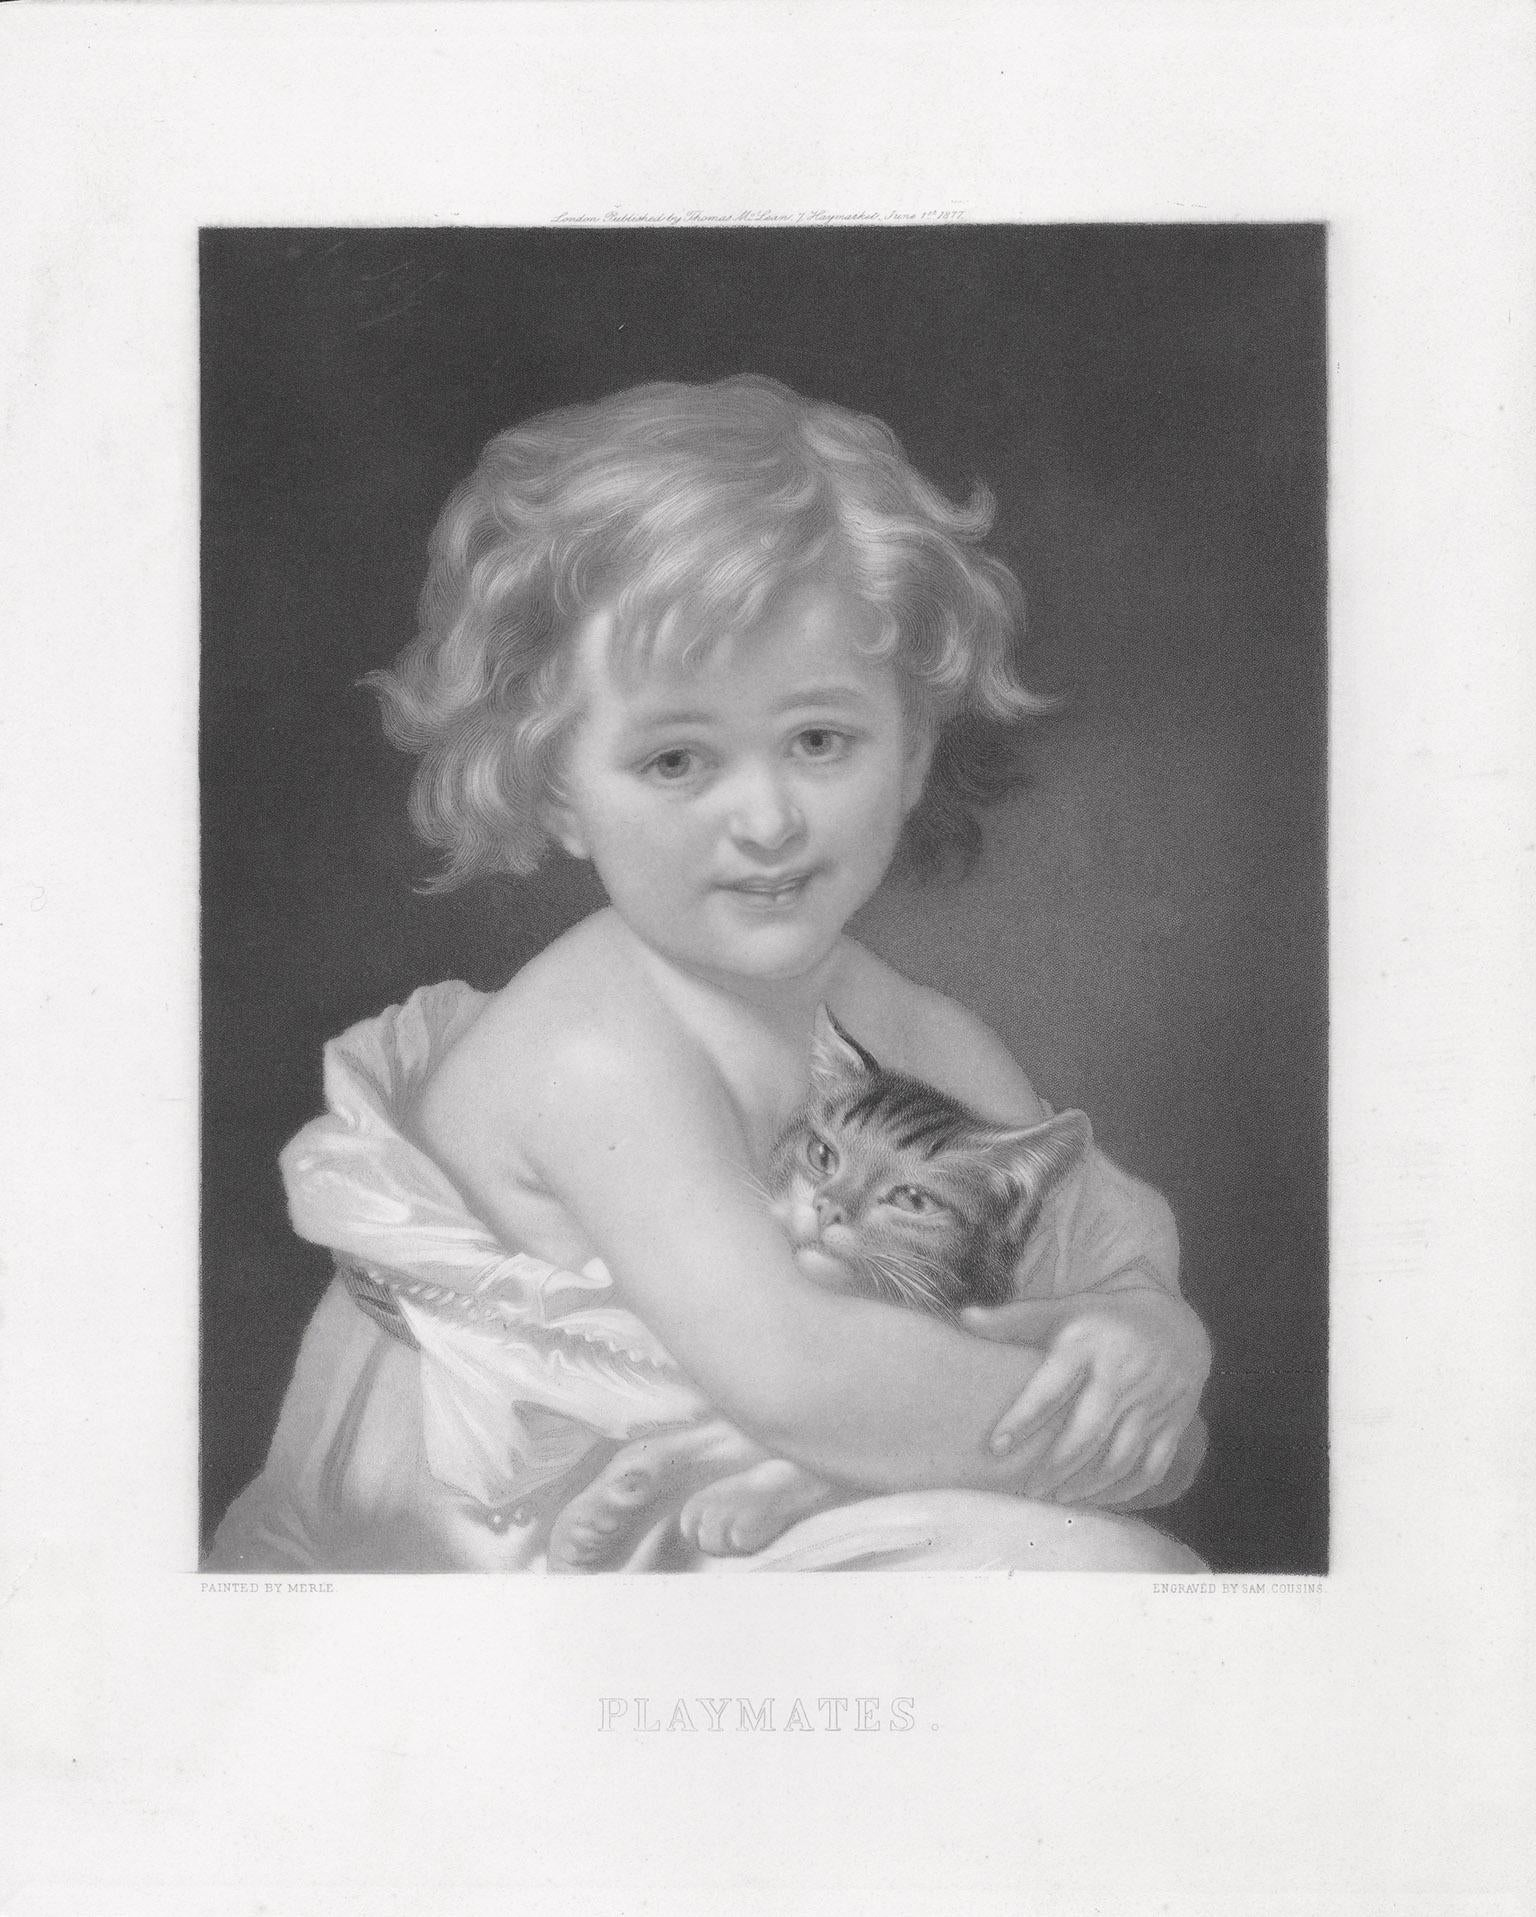 Playmates, mezzotint of child and cat by Cousins after Hugues Merle